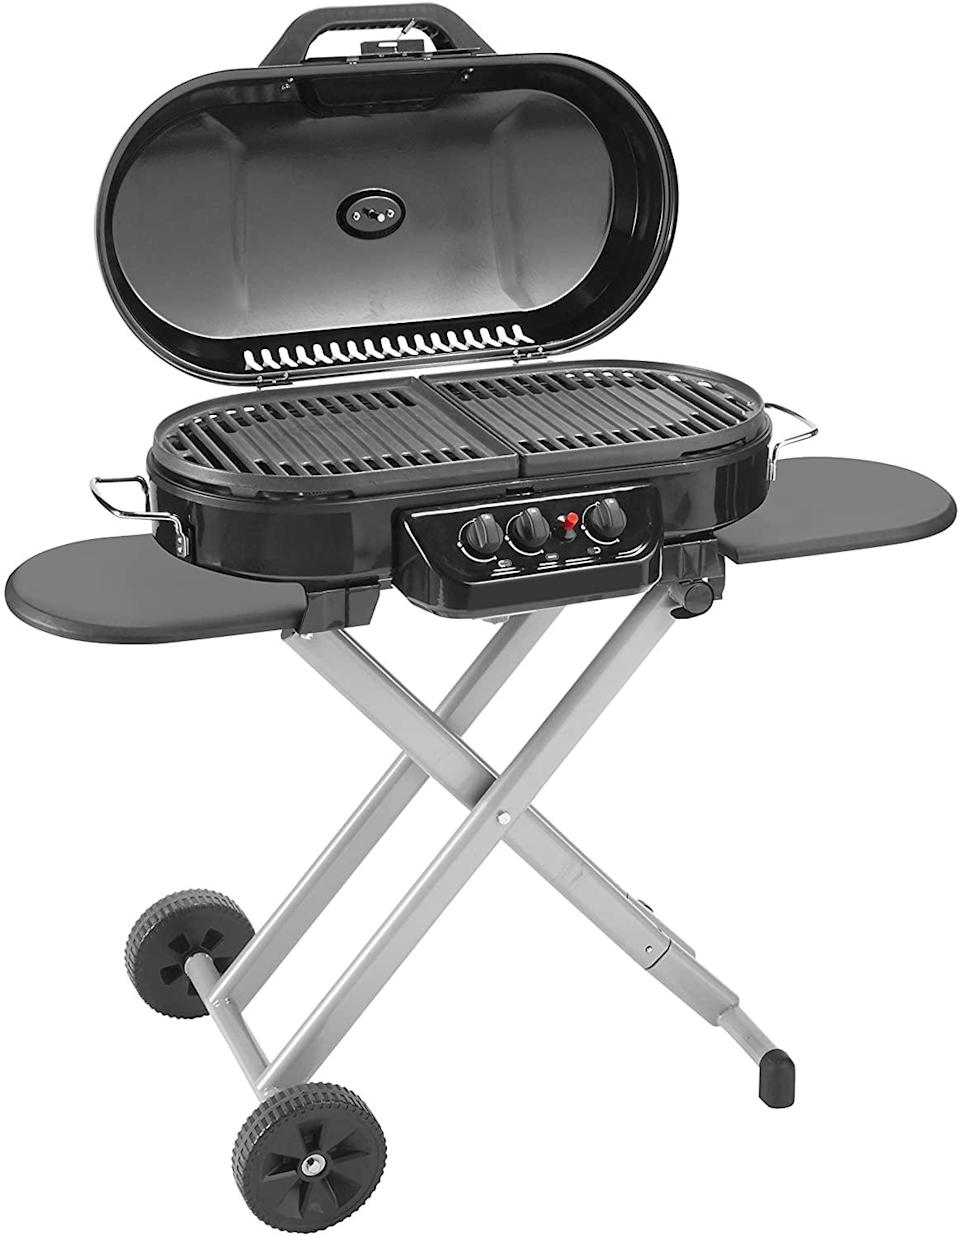 <p>The <span>Coleman RoadTrip 285 Portable Stand-Up Propane Grill</span> ($270) has wheels and folds into a carry-on suitcase-style for easy transport. It comes with two side tables so you can keep your prep materials nearby. It has three adjustable burners.</p>